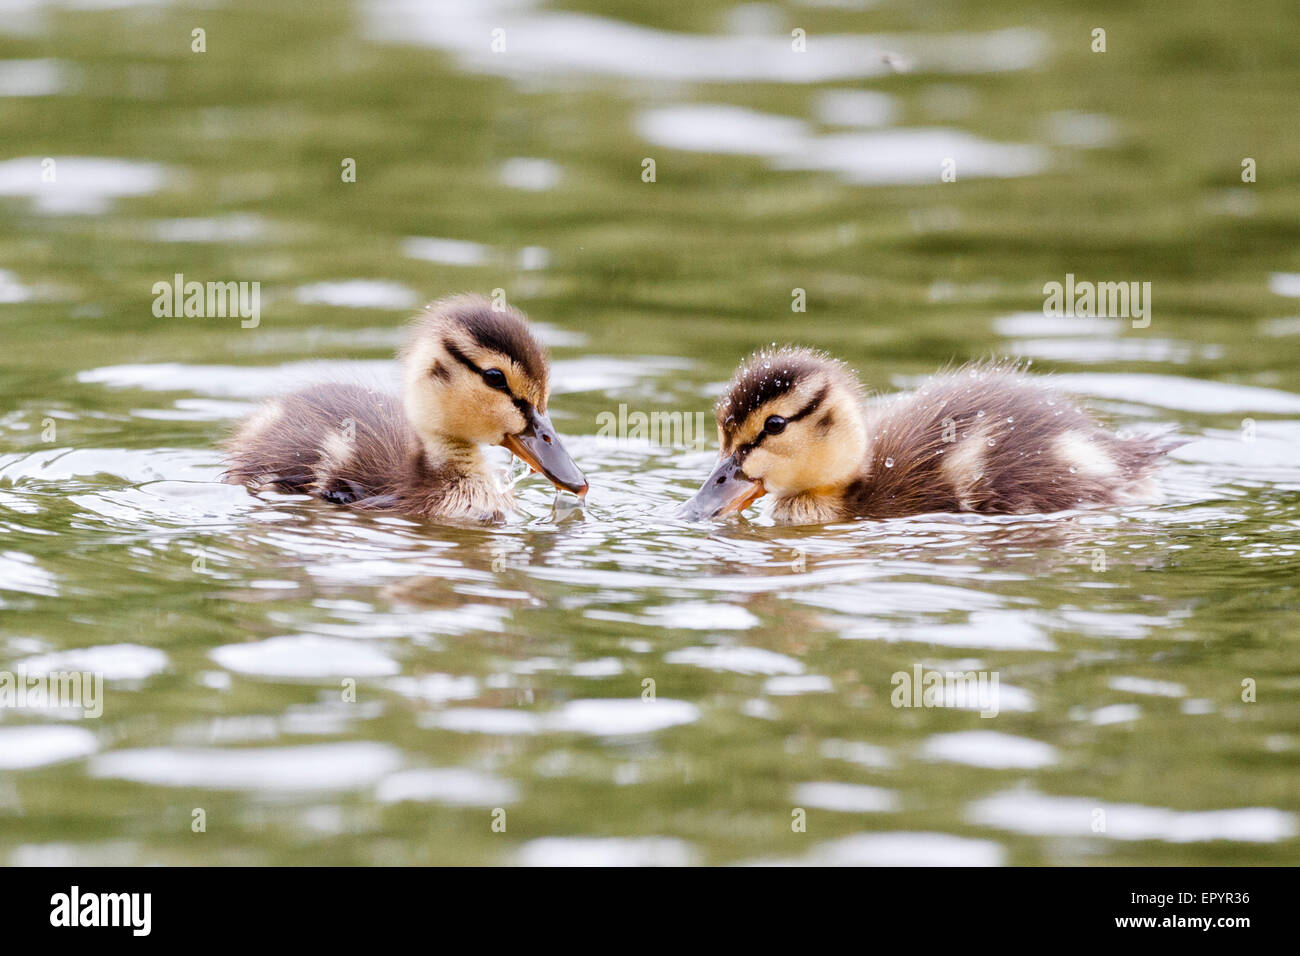 Windsor, UK. 23rd May, 2015. 23rd May 2015. Windsor, UK. UK weather. A pair of mallard ducklings enjoy a swim on - Stock Image